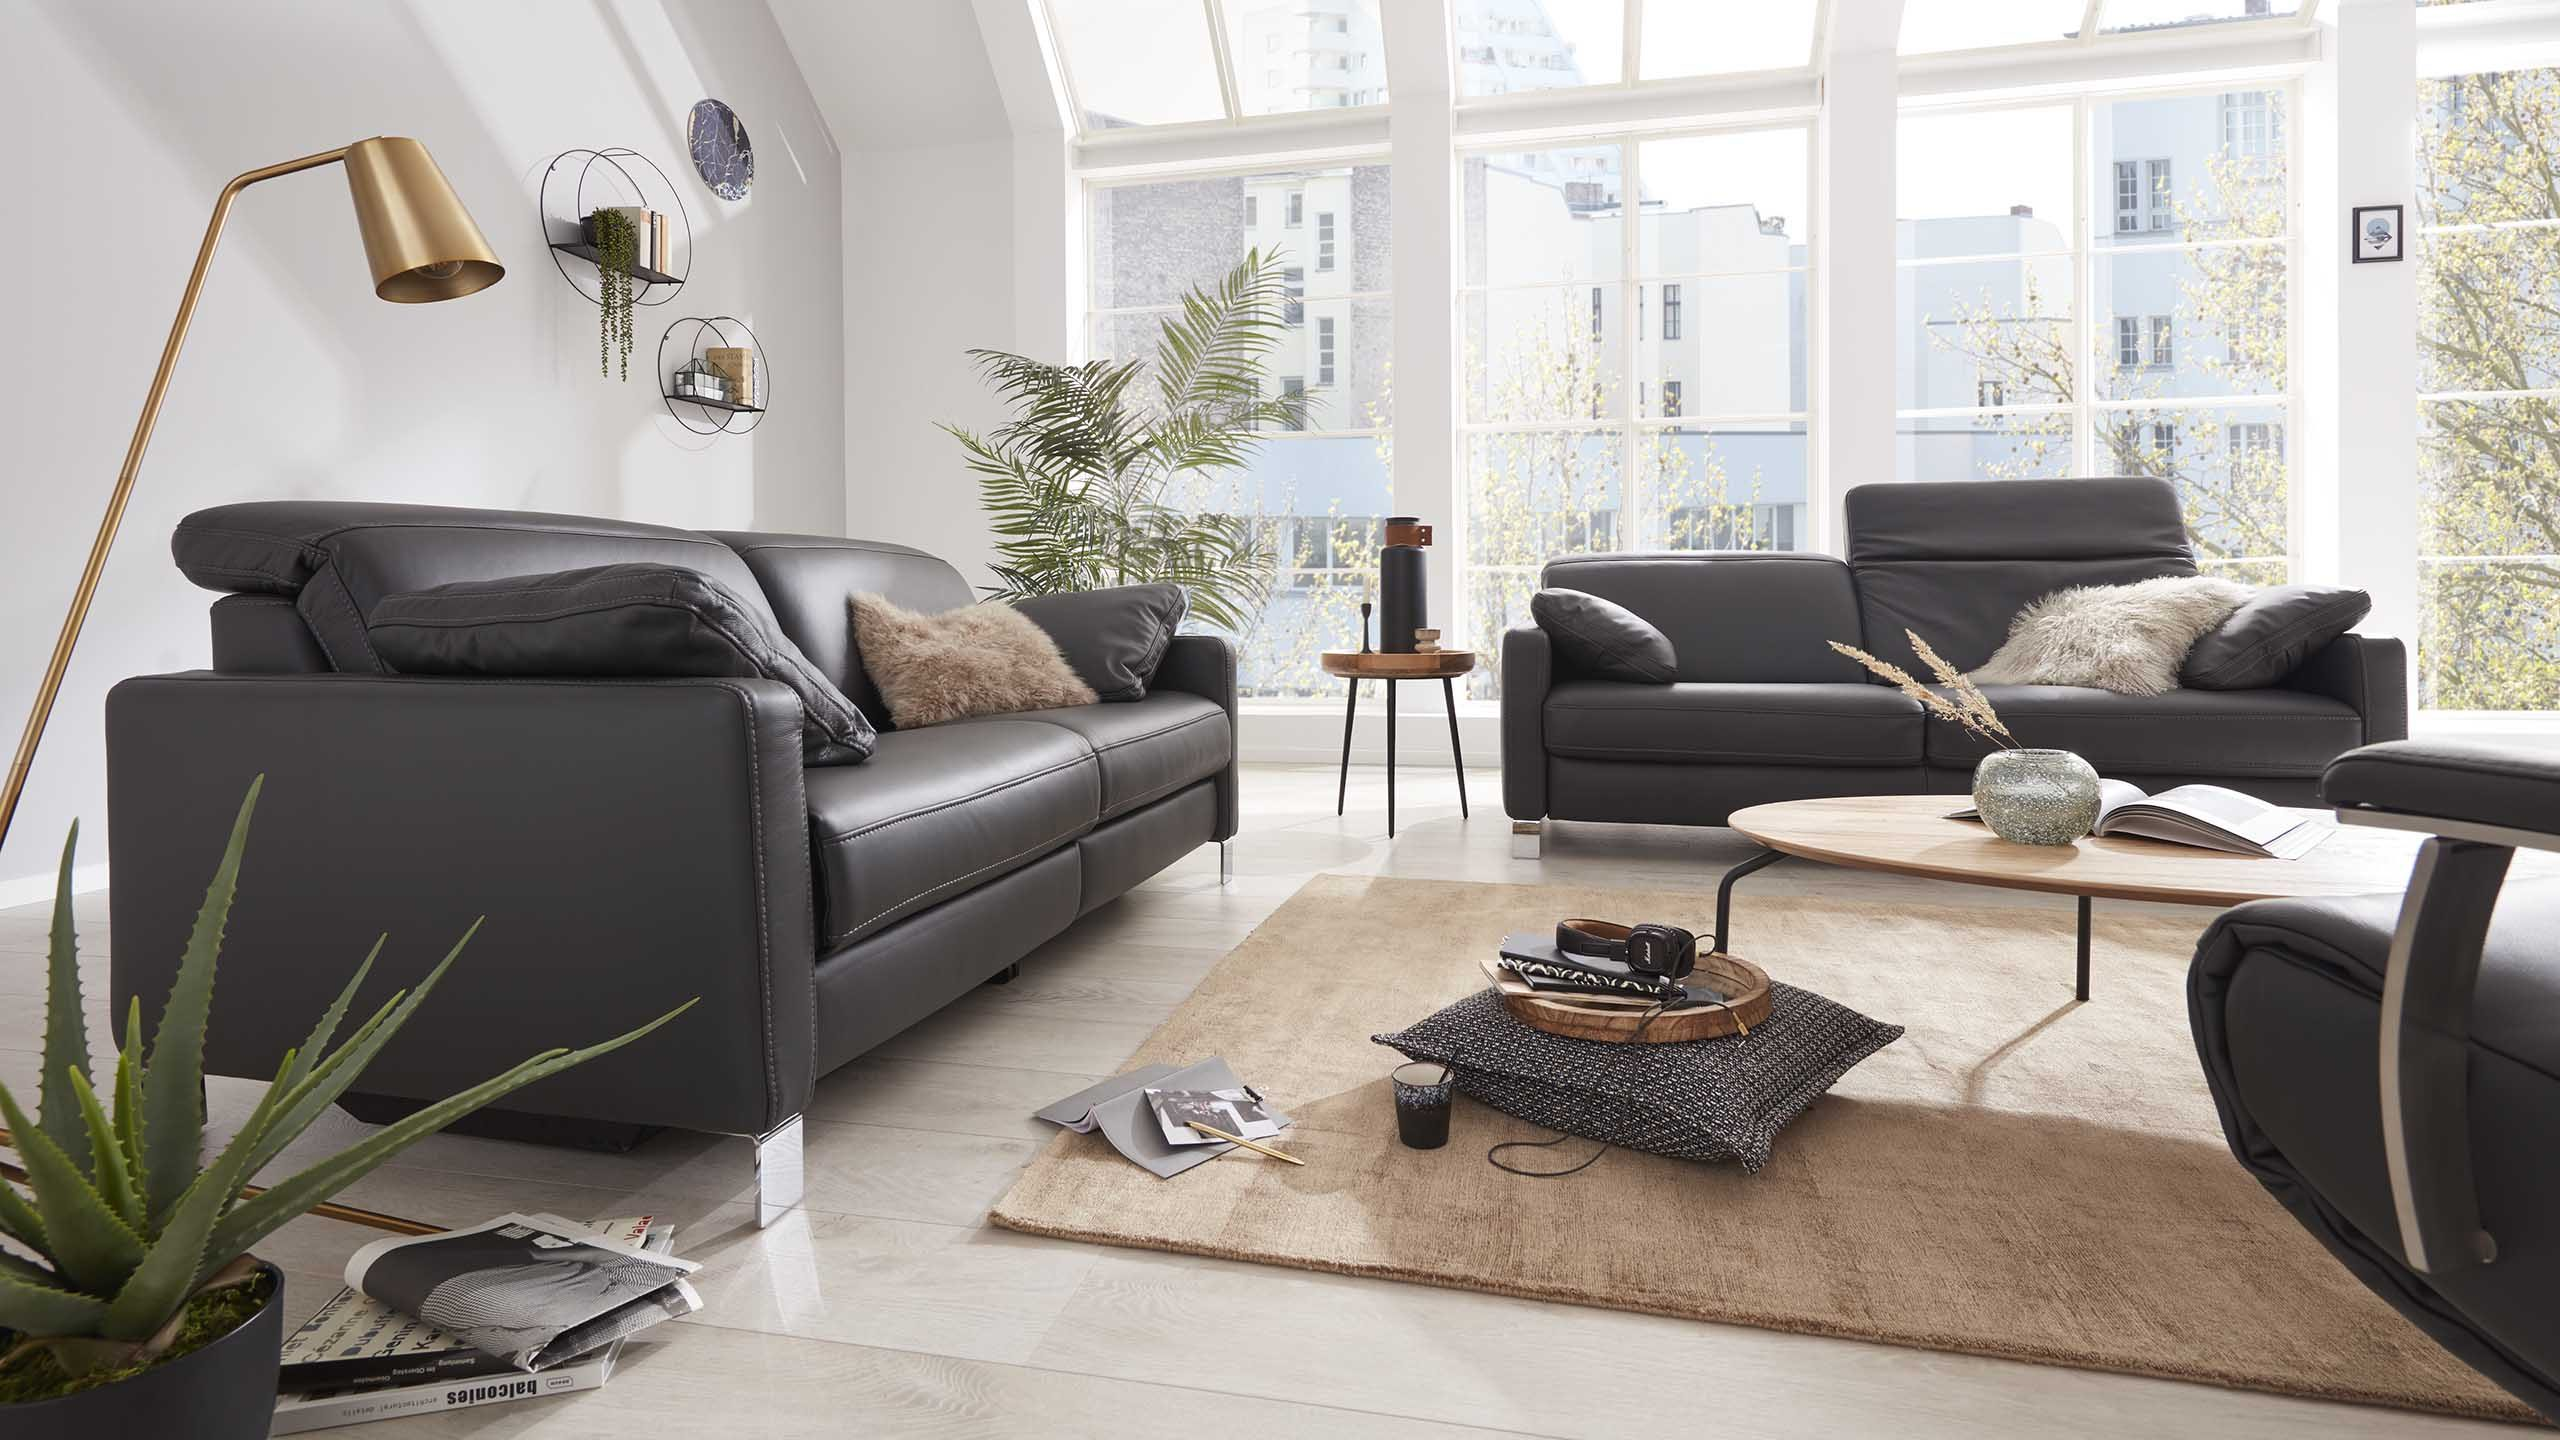 Interliving Sofa Serie 4054 in anthrazit